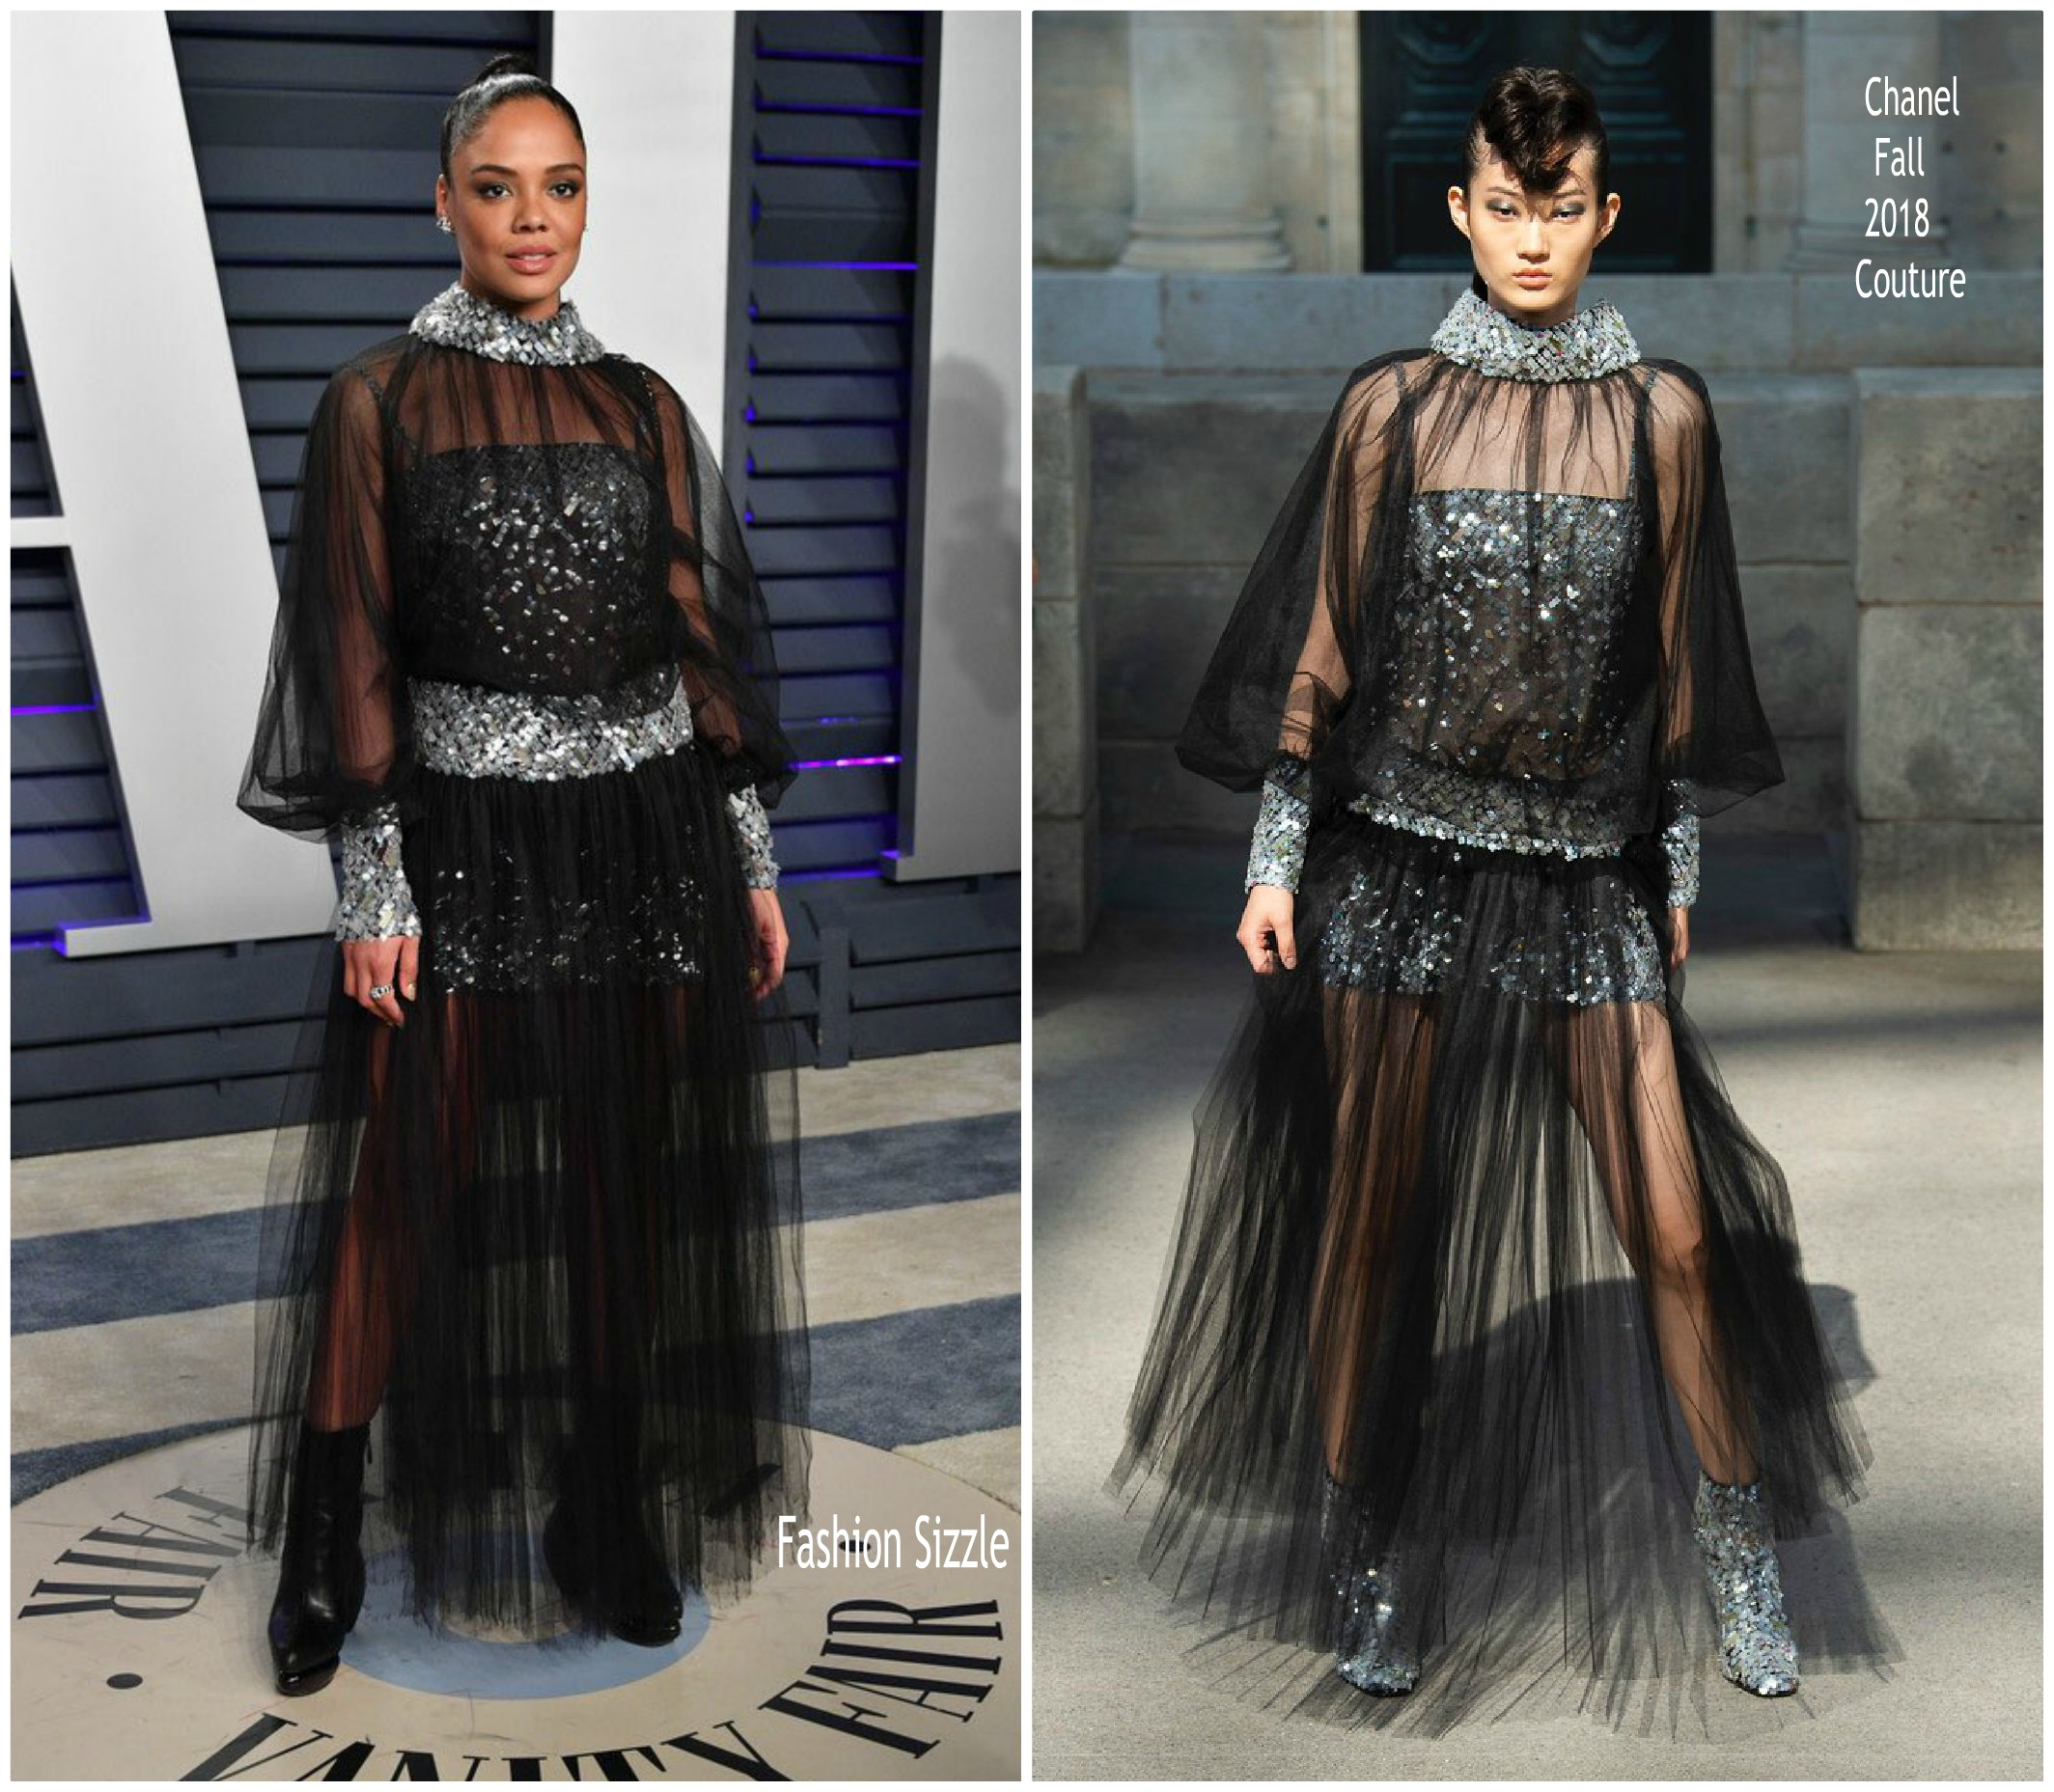 tessa -thompson-in-chanel-haute-couture-2019-vanity-fair-oscar-party